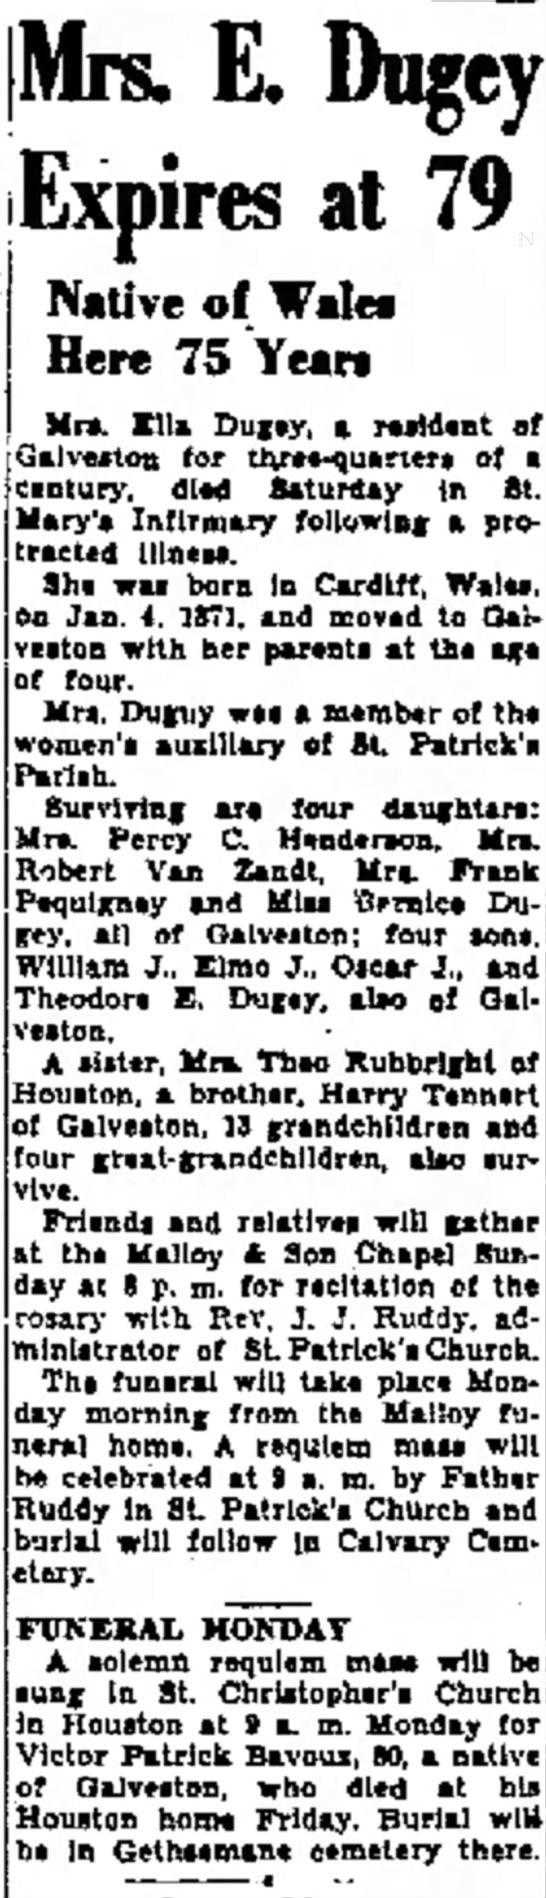 Grandmother's obit. 7/9/1950 - on Mra. Acton of a afternoon. Mre. Texu will...